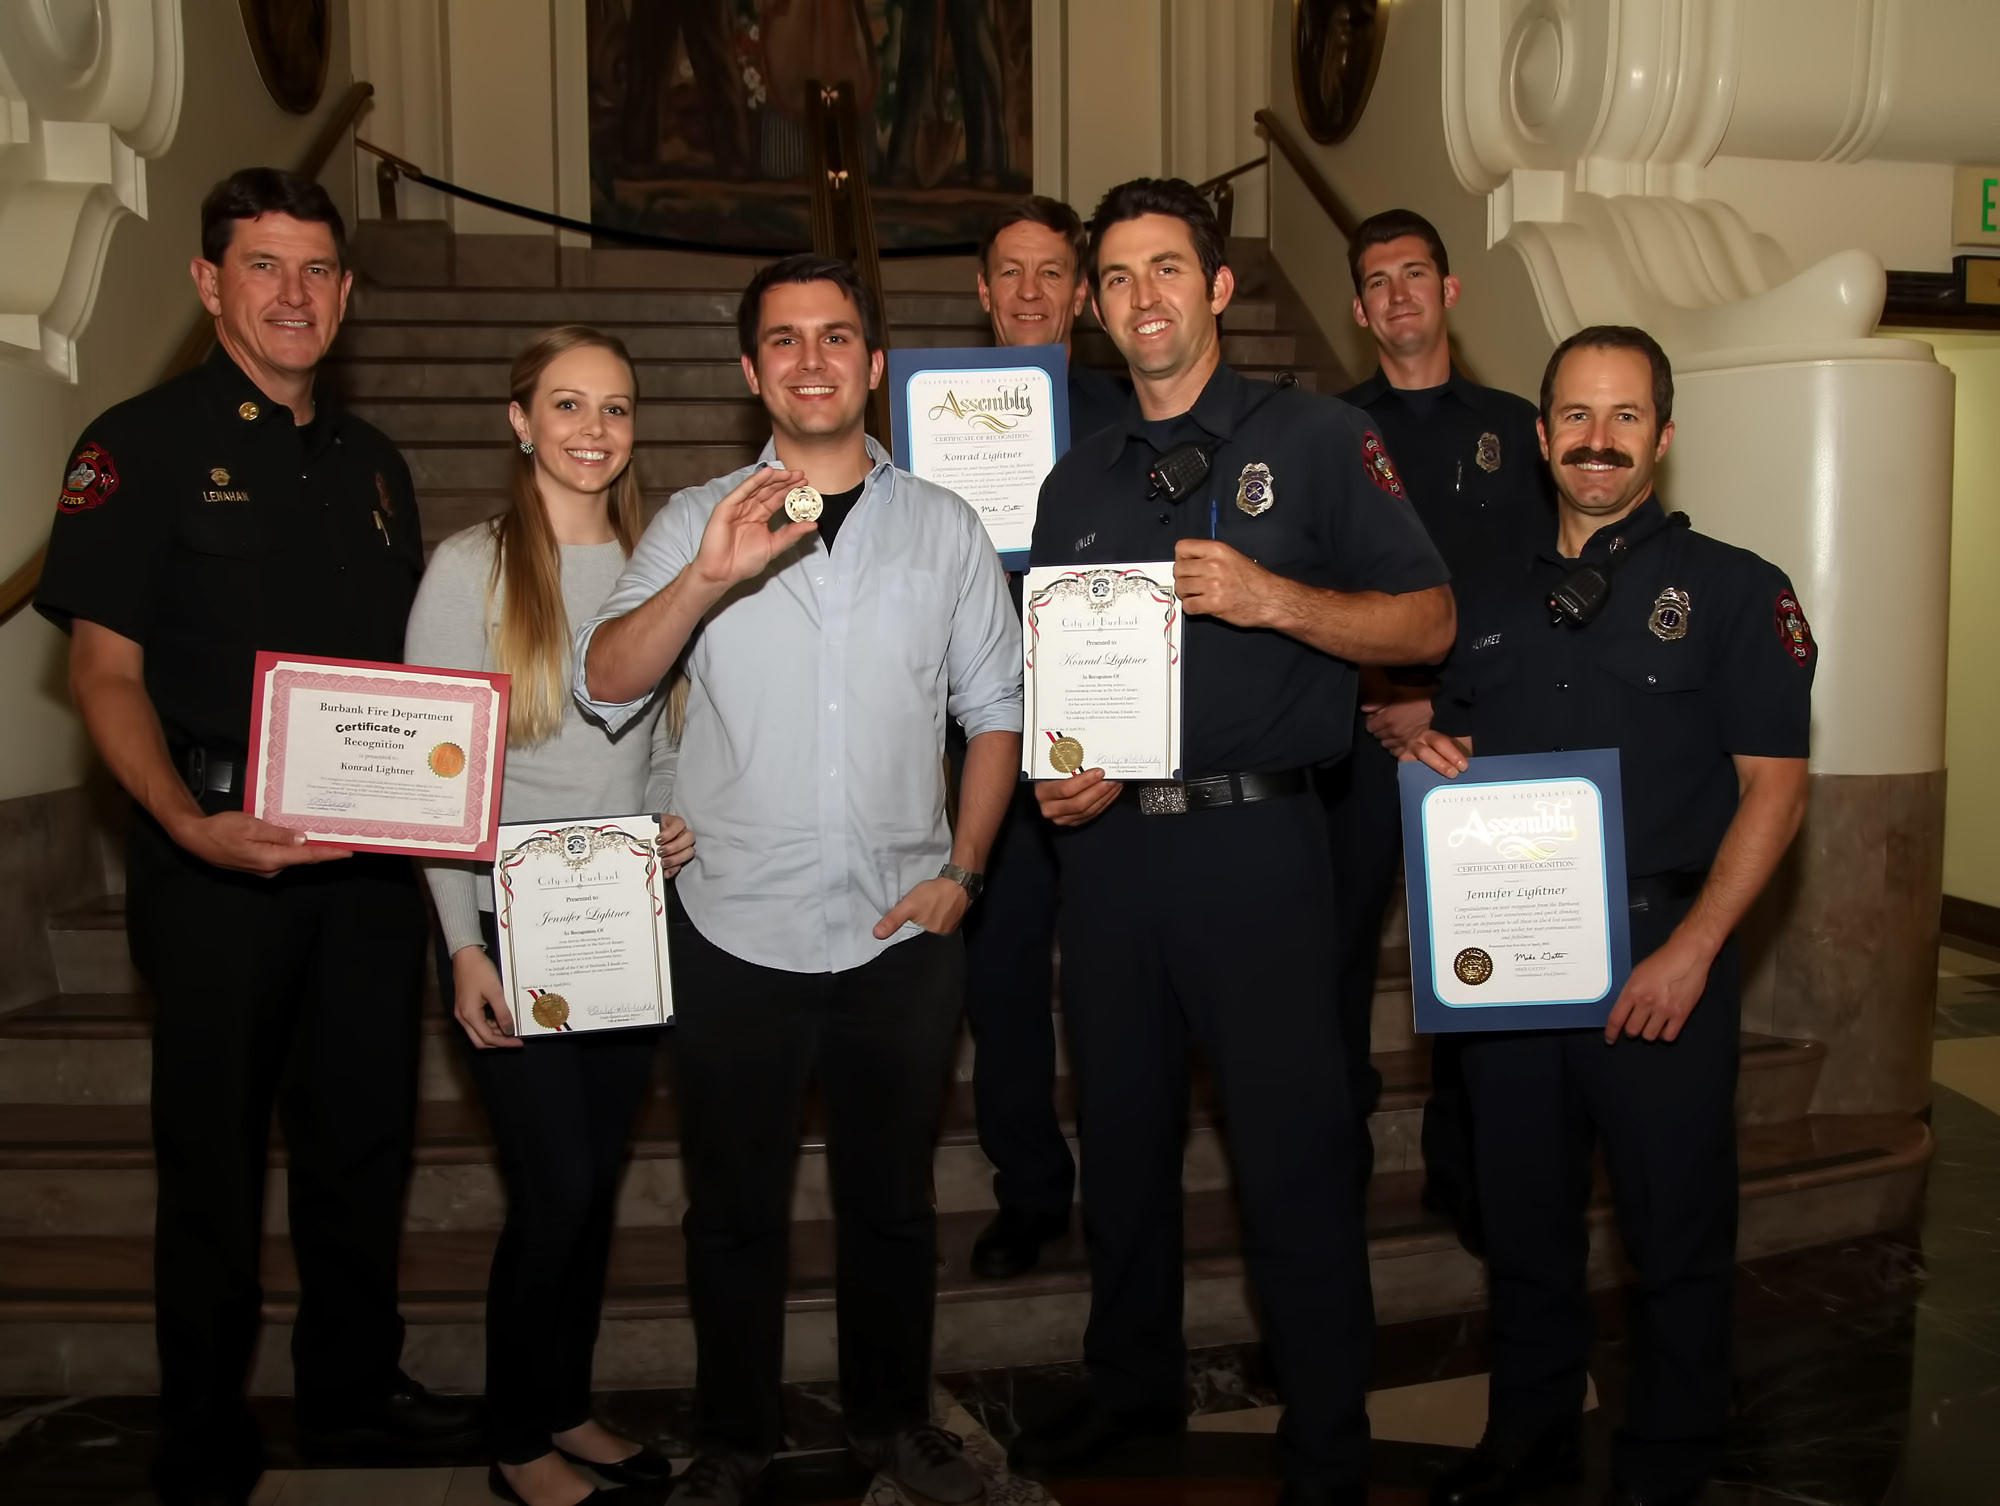 Members of the Burbank Fire Department, along with City Council members, honored Konrad Lightner and his wife Jennifer, after they saved the life of a 3-year-old boy who fell from a third-story window.